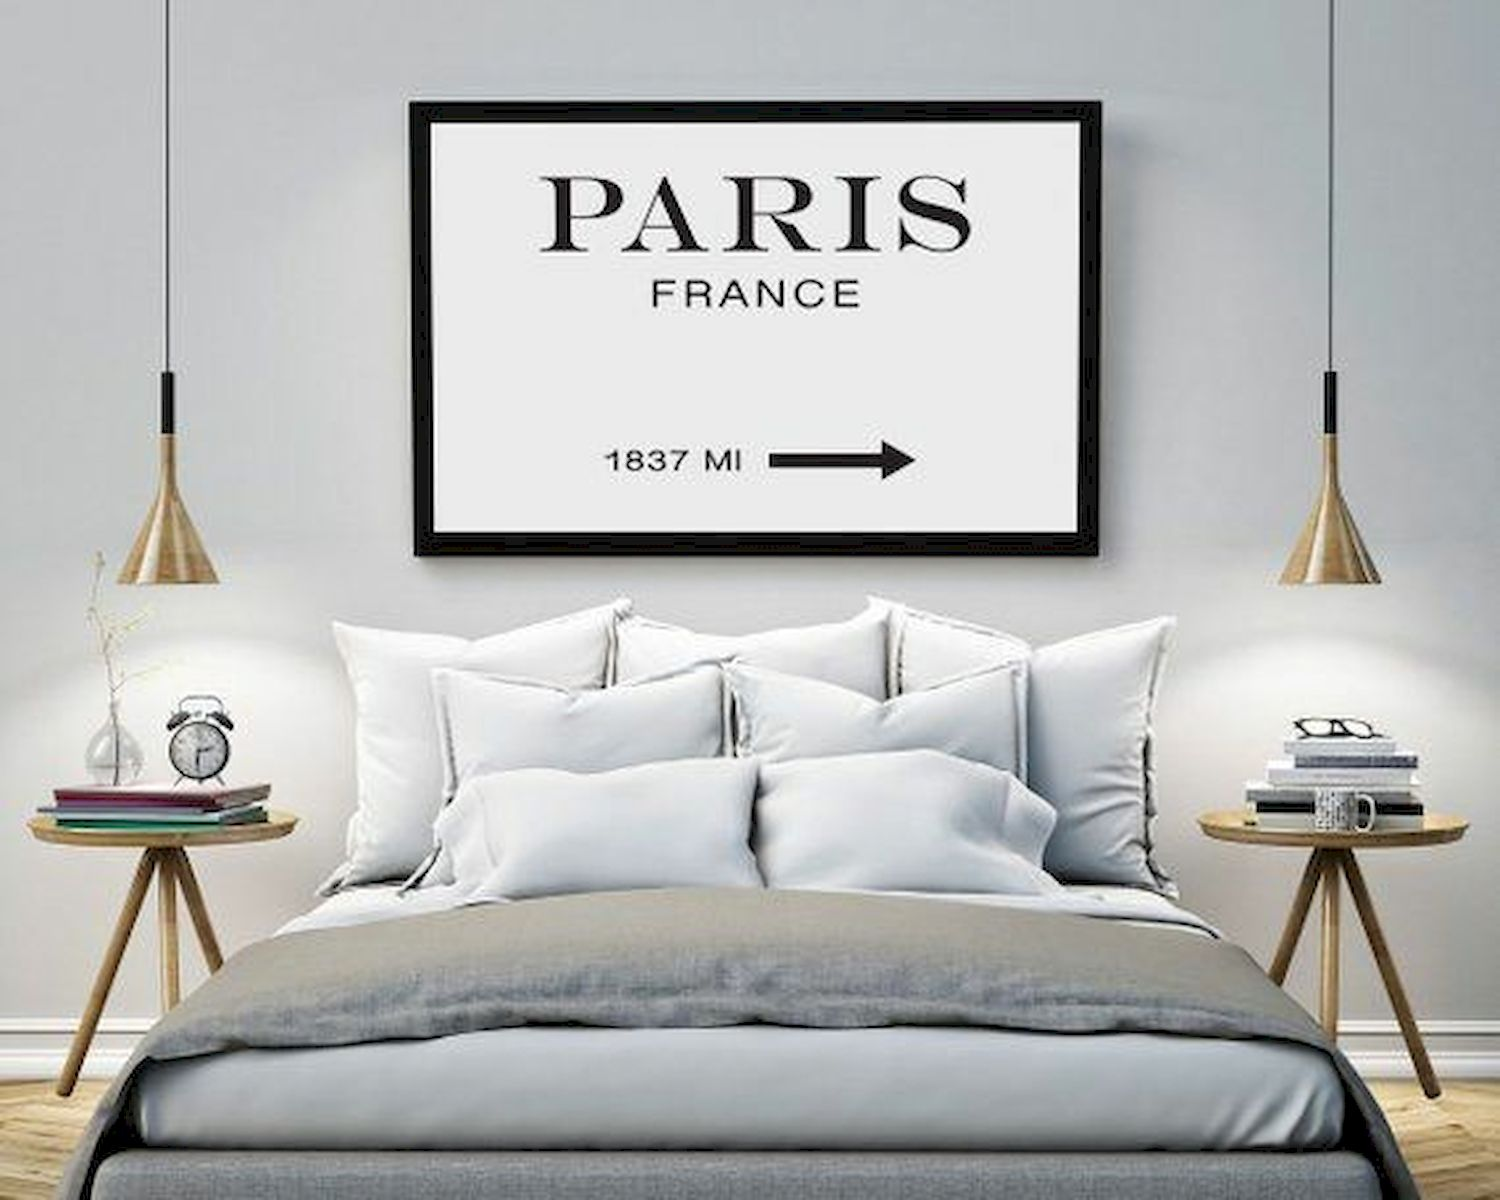 70 Simple Wall Bedroom Decor and Design Ideas (16)